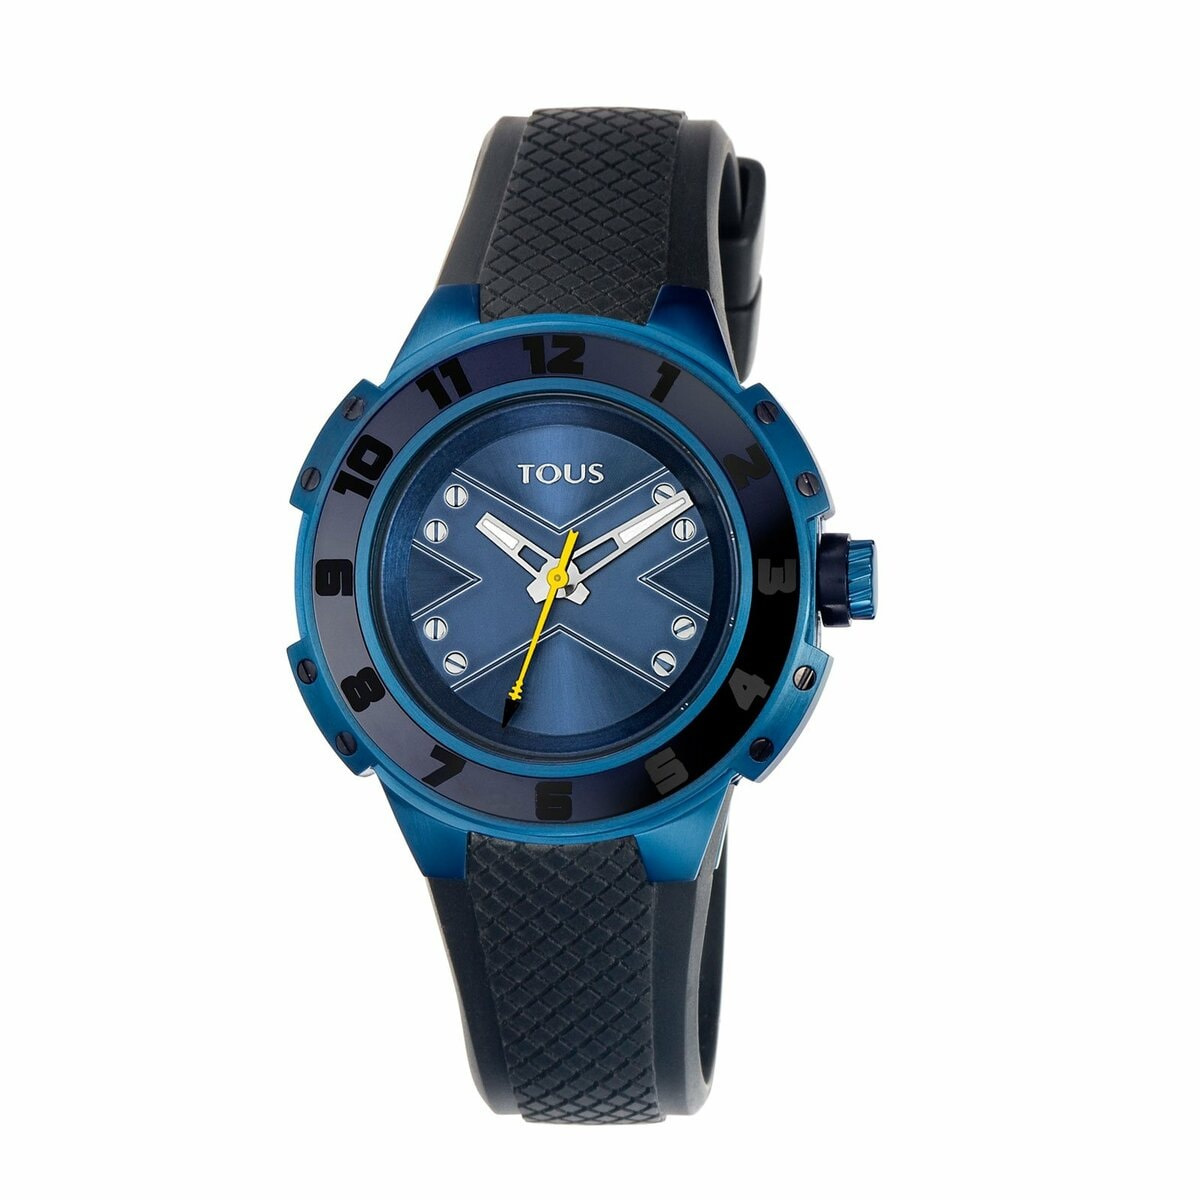 Two-tone blue/black IP Steel Xtous Lady Watch with black Silicone strap